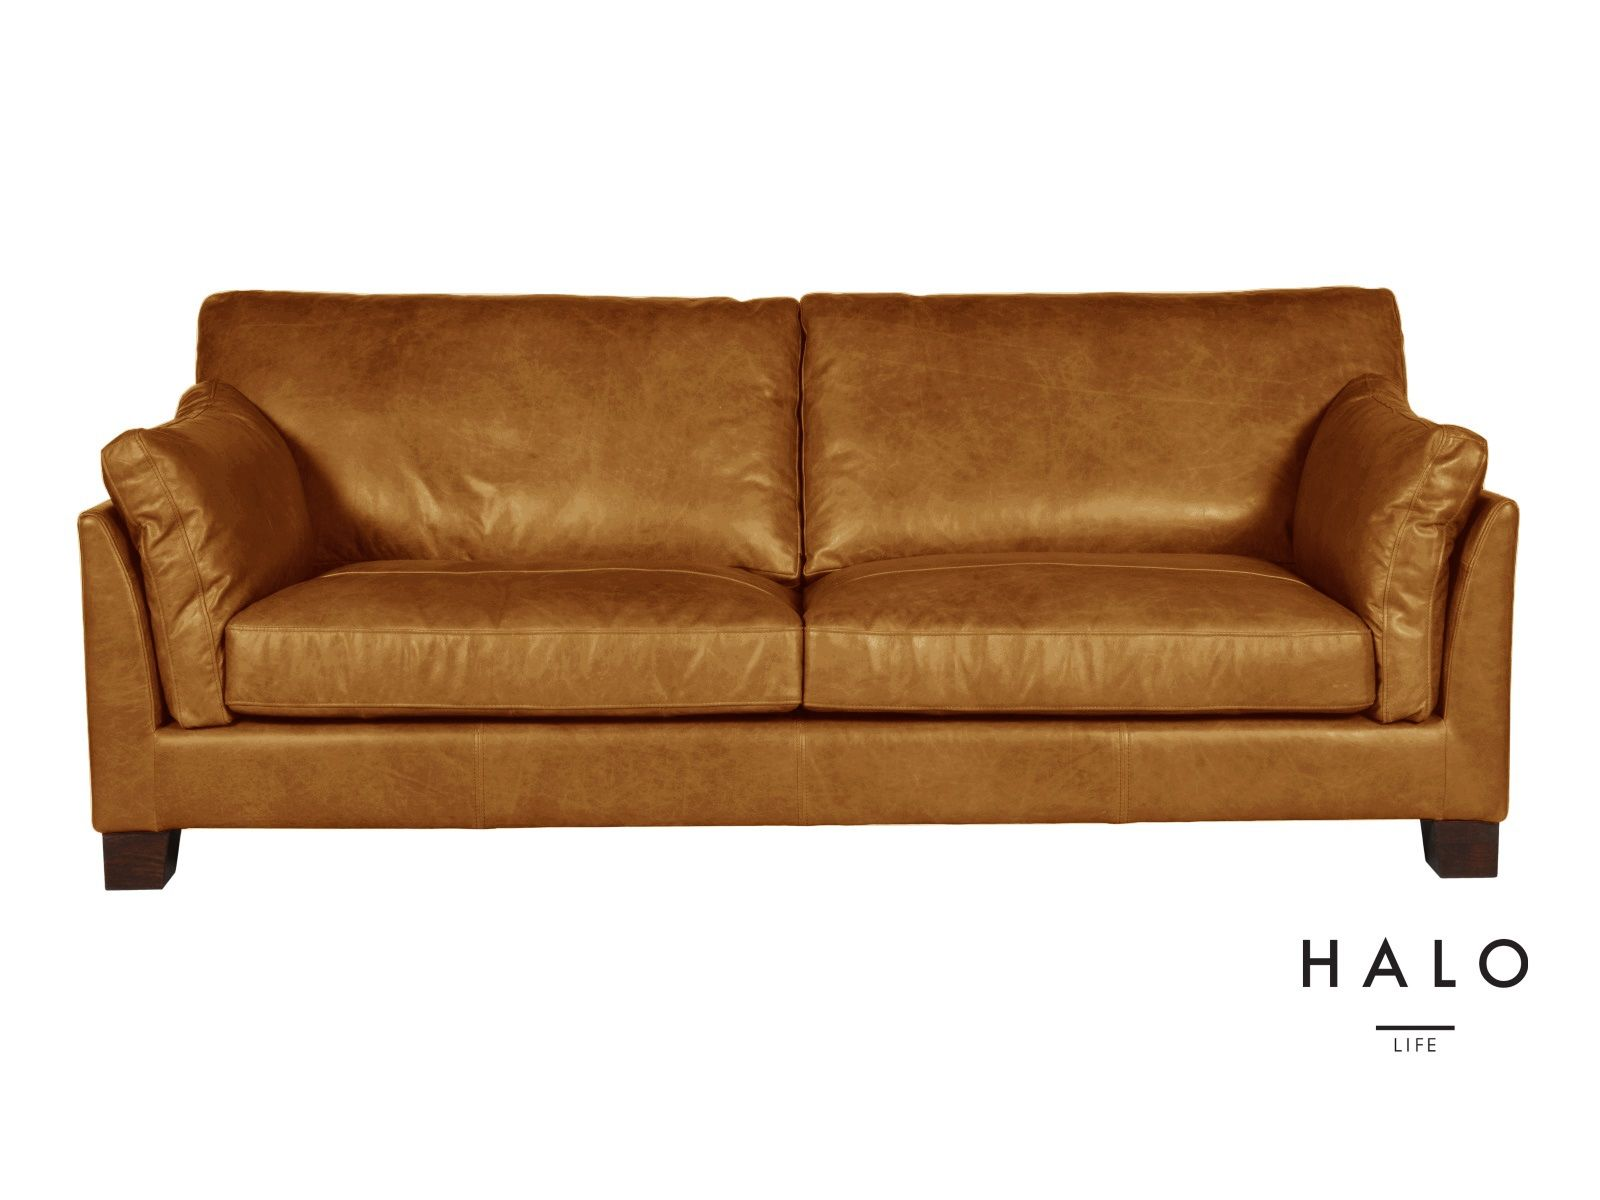 Balmoral 3 Seater Sofa Outback DFS Living room